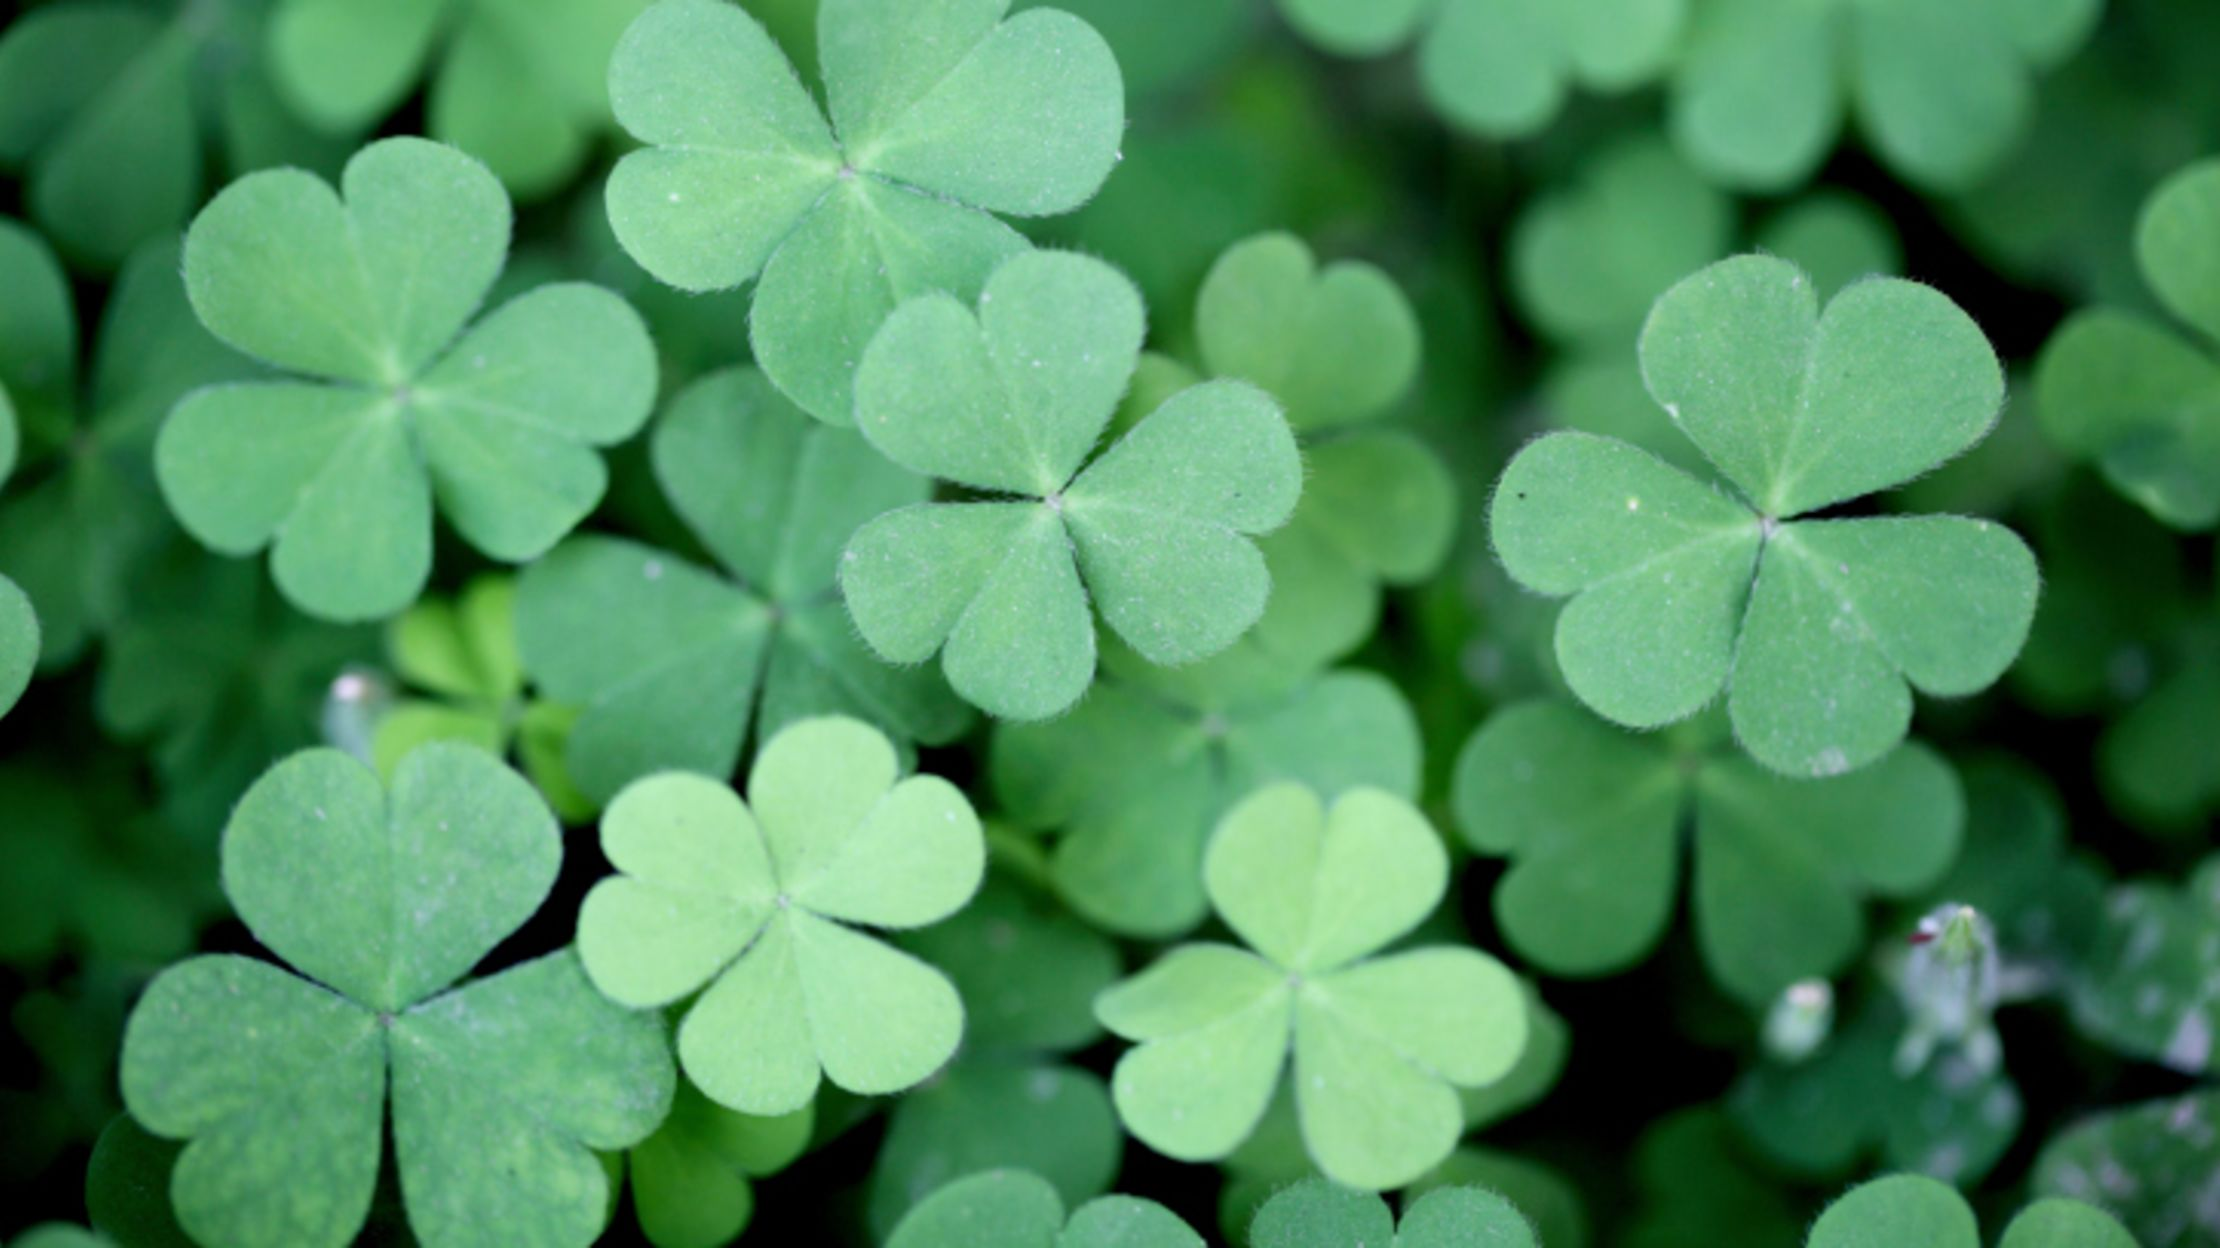 dfb66b6a3e0ff 15 Things You Might Not Know About St. Patrick's Day | Mental Floss